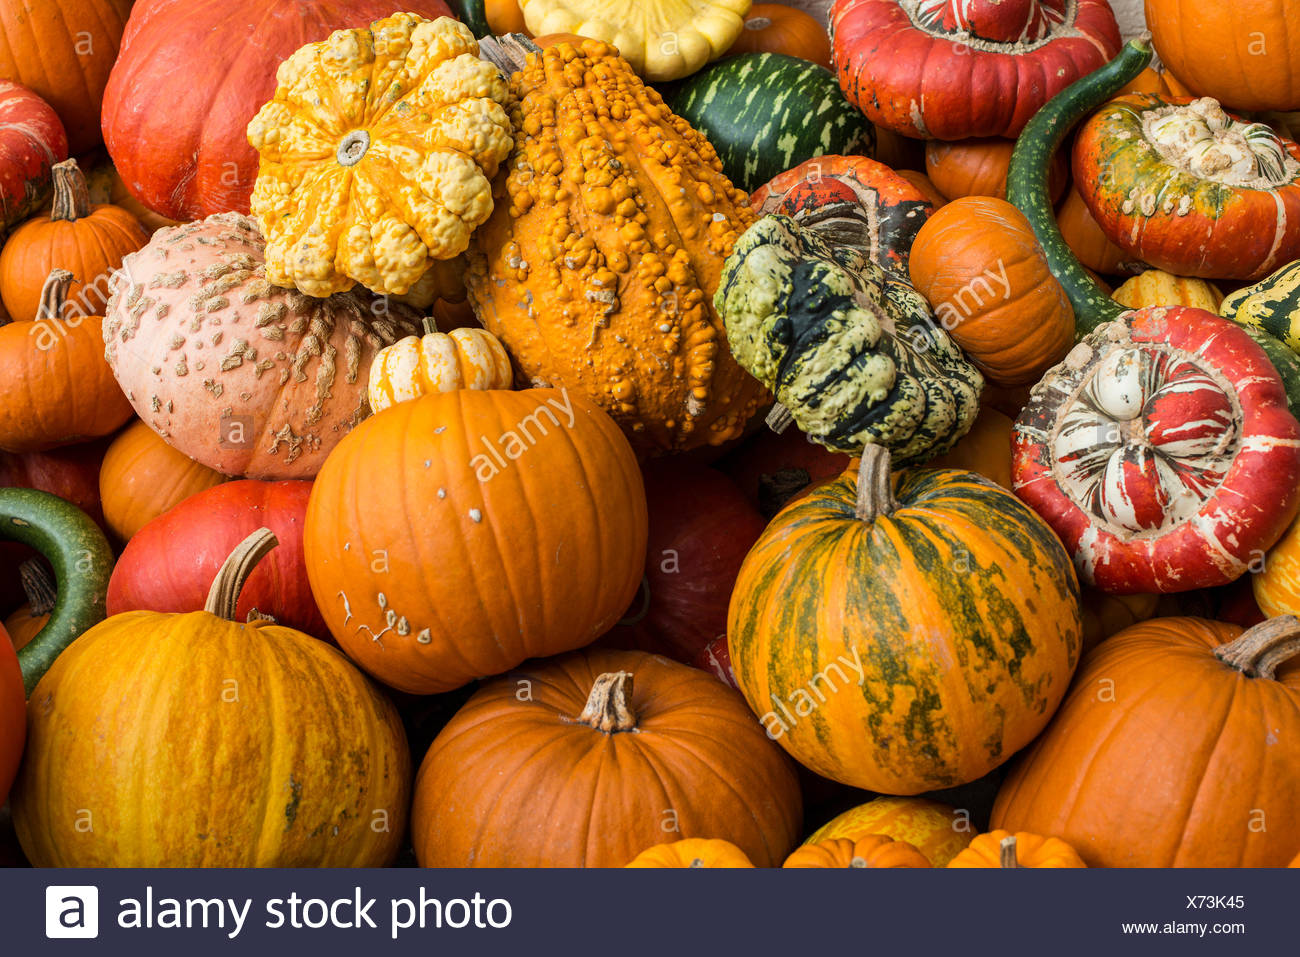 Different varieties of pumpkins, pumpkins, Baden-Württemberg, Germany - Stock Image